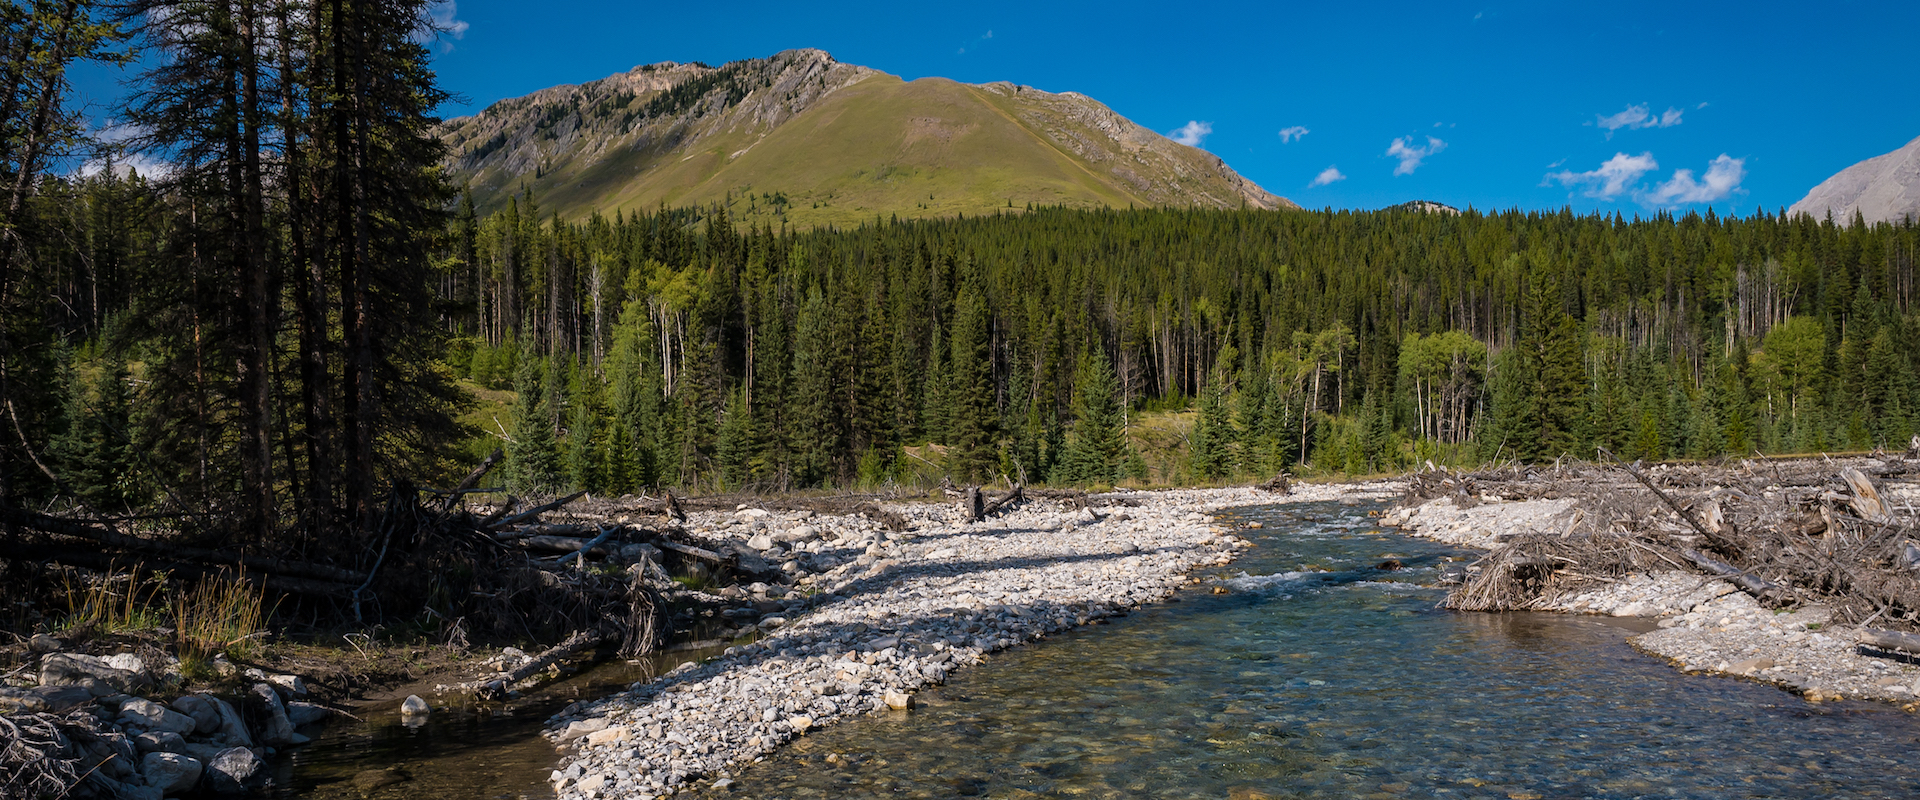 Canadian Rockies Horseback Riding Trails